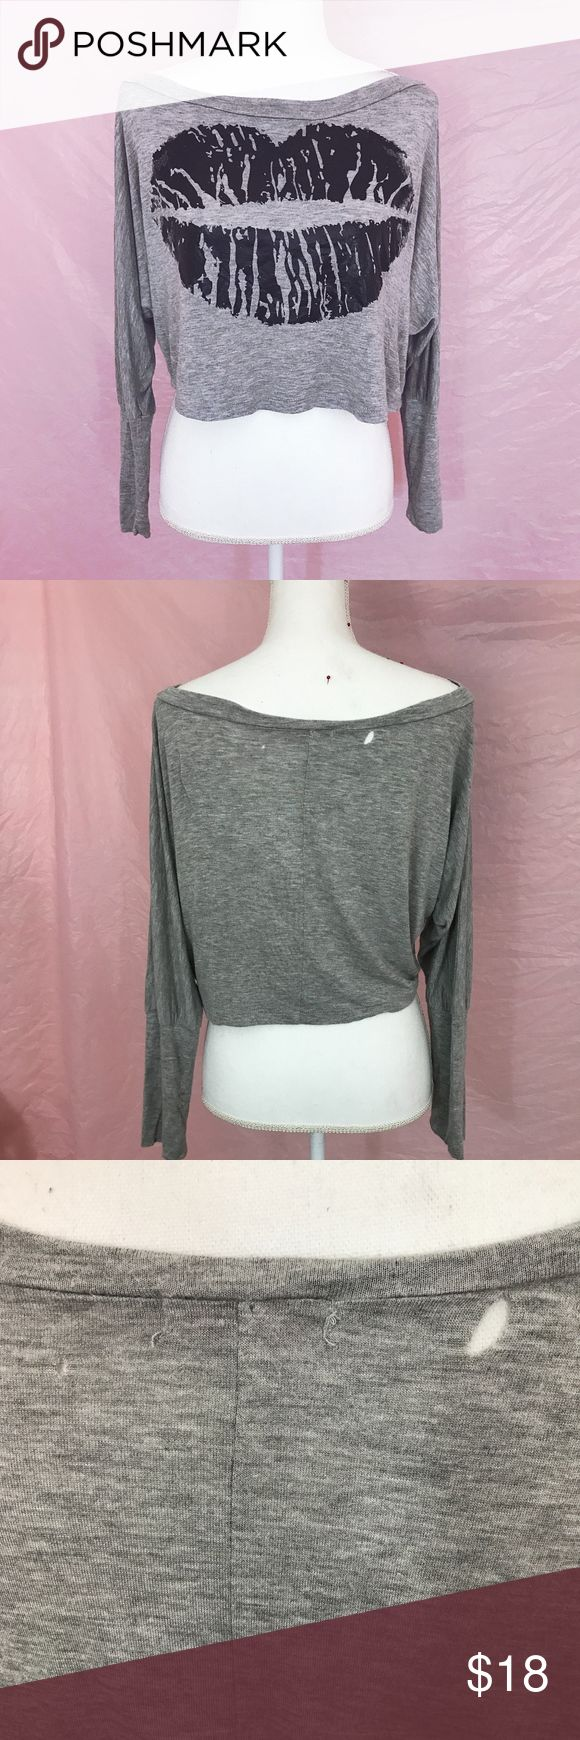 Lip Print Graphic Gray Long Sleeve Crop Top Super cute lip print crop top!  Perfect for lounging around, but so easy to dress up into a fun outfit!  Super soft gray material with shiny black lip print design.  Sleeves are loose but are more fitted from the elbows down.  No size tag, fits small-large.  Intentional loose fit.  Two tiny holes in the back near the top.  No staining.  Add your favorite listings to a bundle to receive a special discount! 💕 Body Central Tops Crop Tops